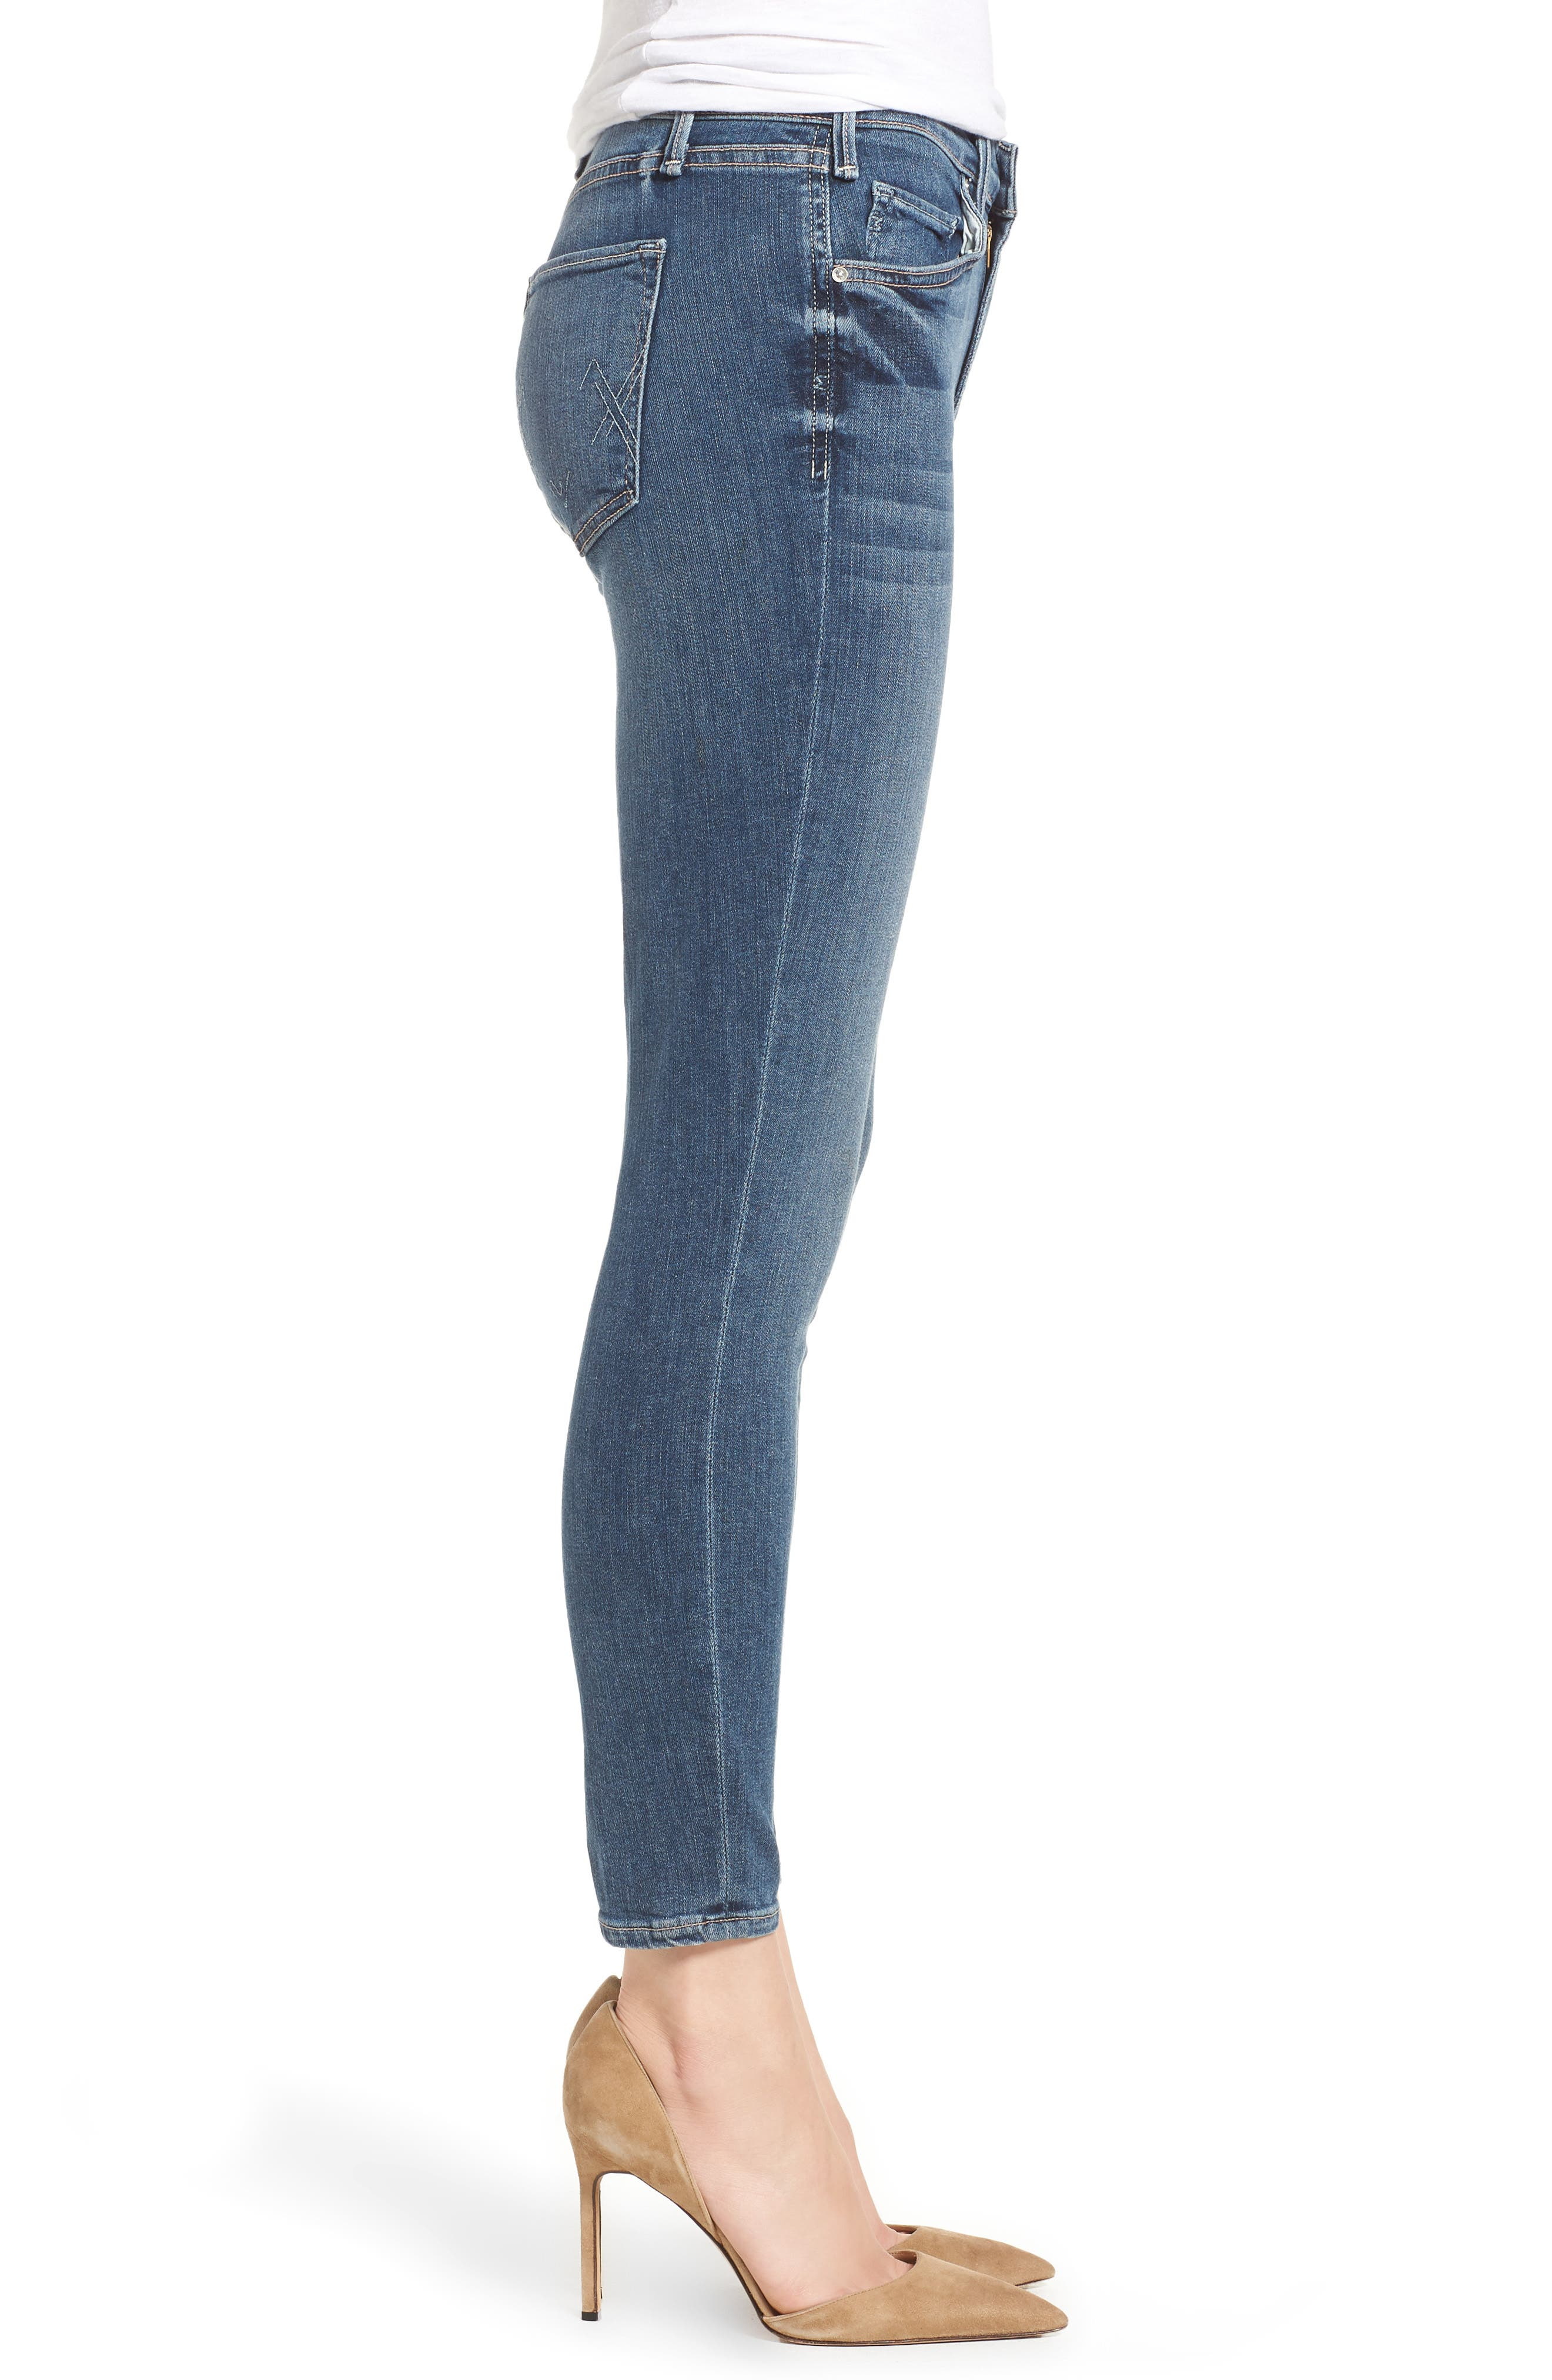 Newton Crop Skinny Jeans,                             Alternate thumbnail 3, color,                             Barthelemy Gardens